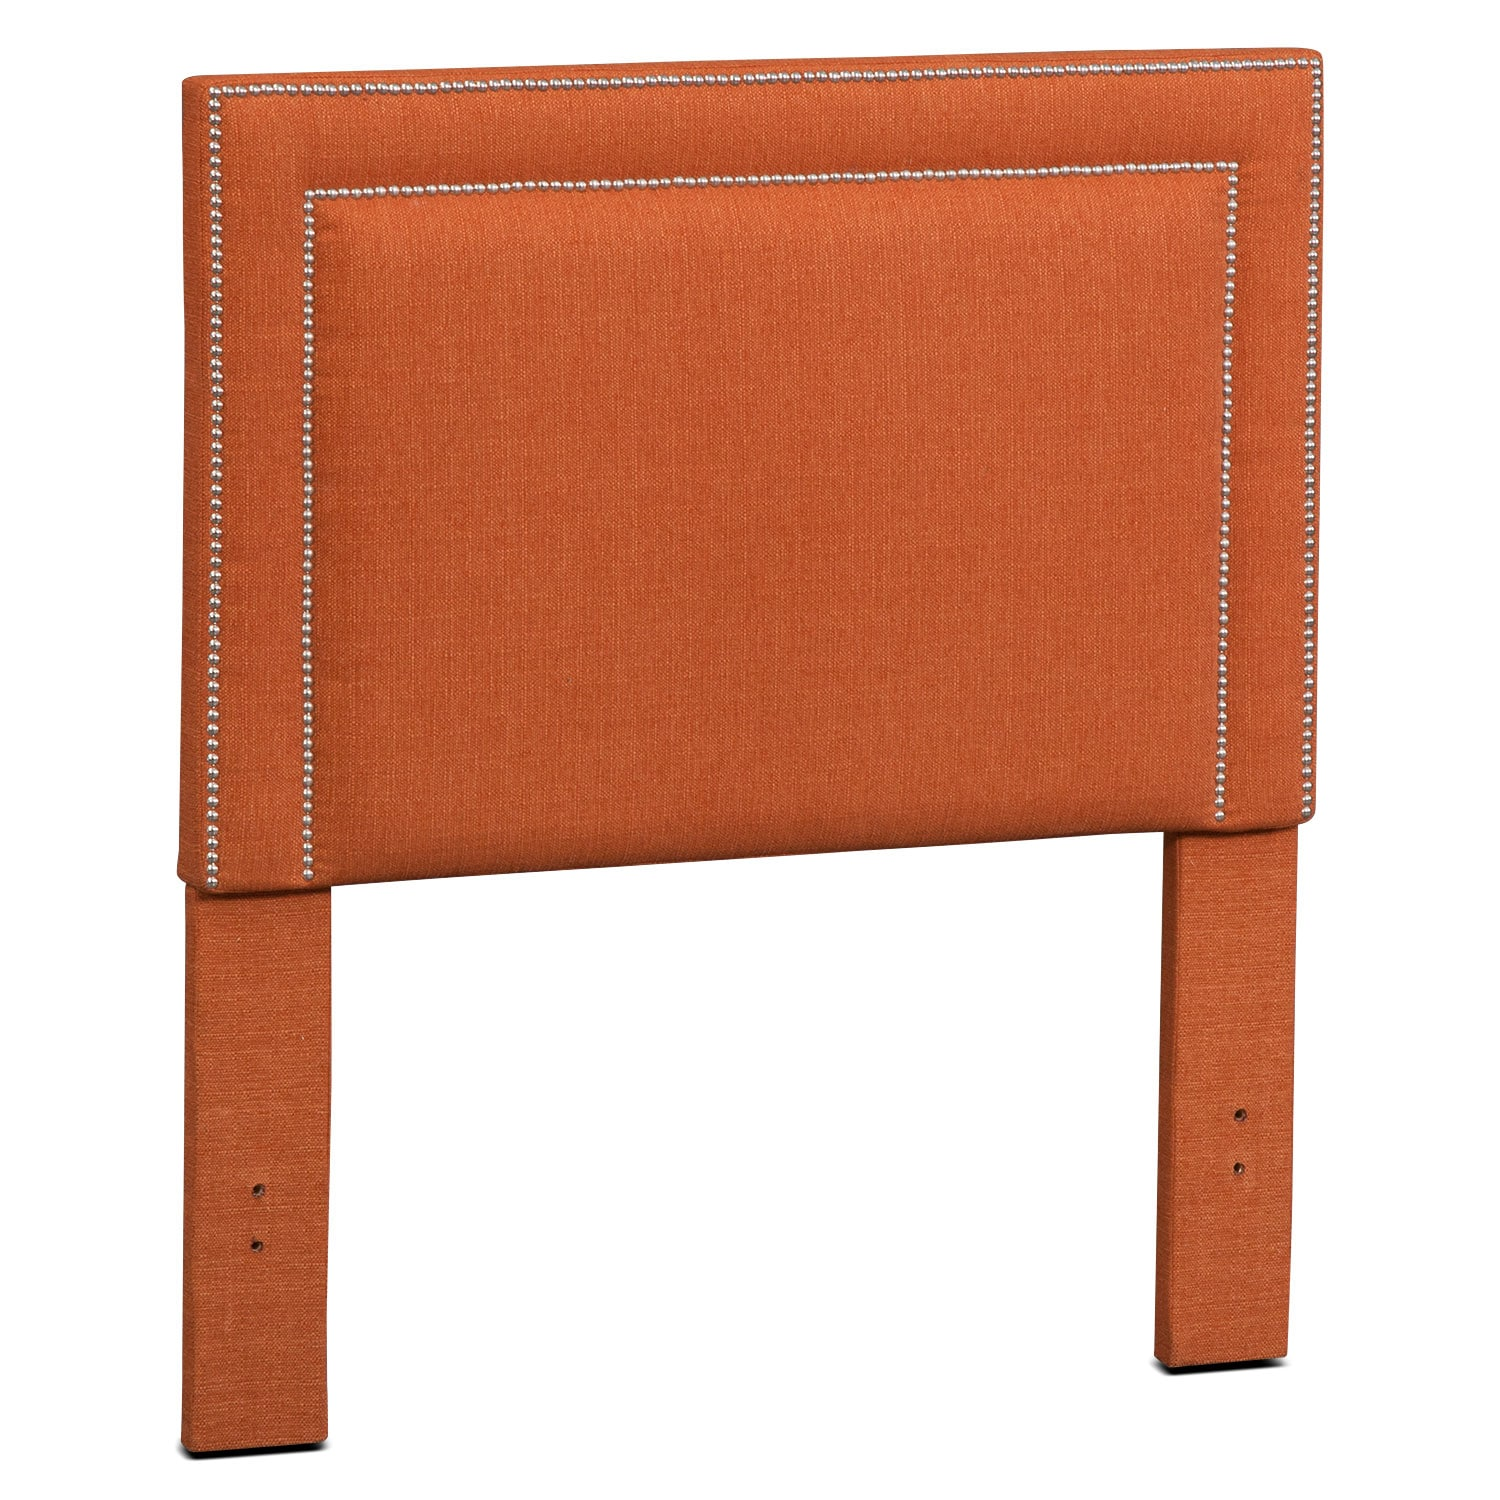 Bedroom Furniture - Natalie Twin Upholstered Headboard - Orange